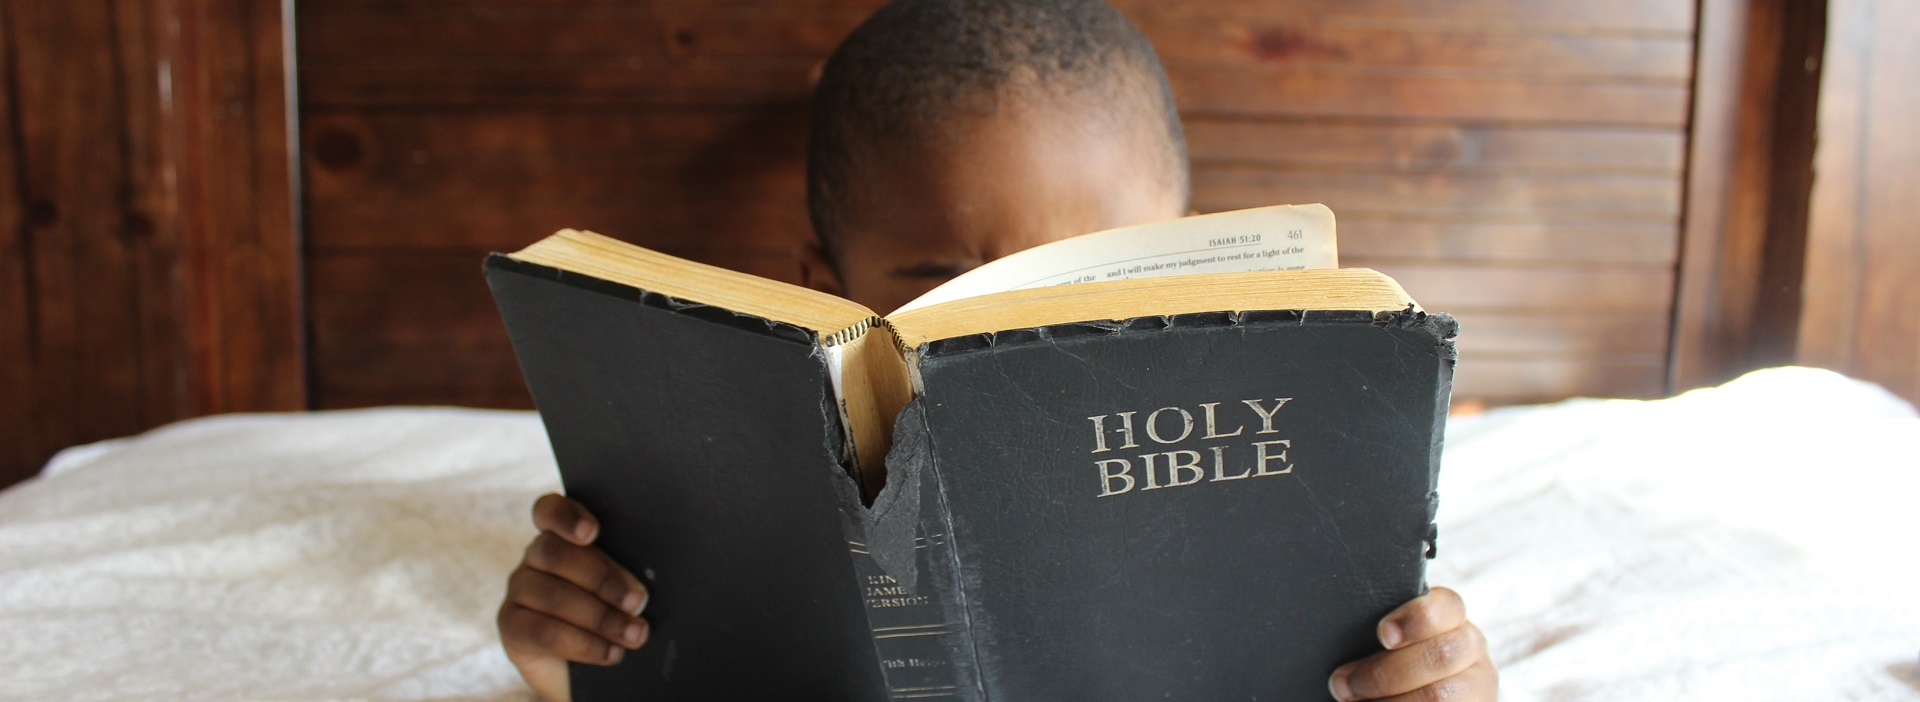 Children are an important and valuable part of God's Kingdom